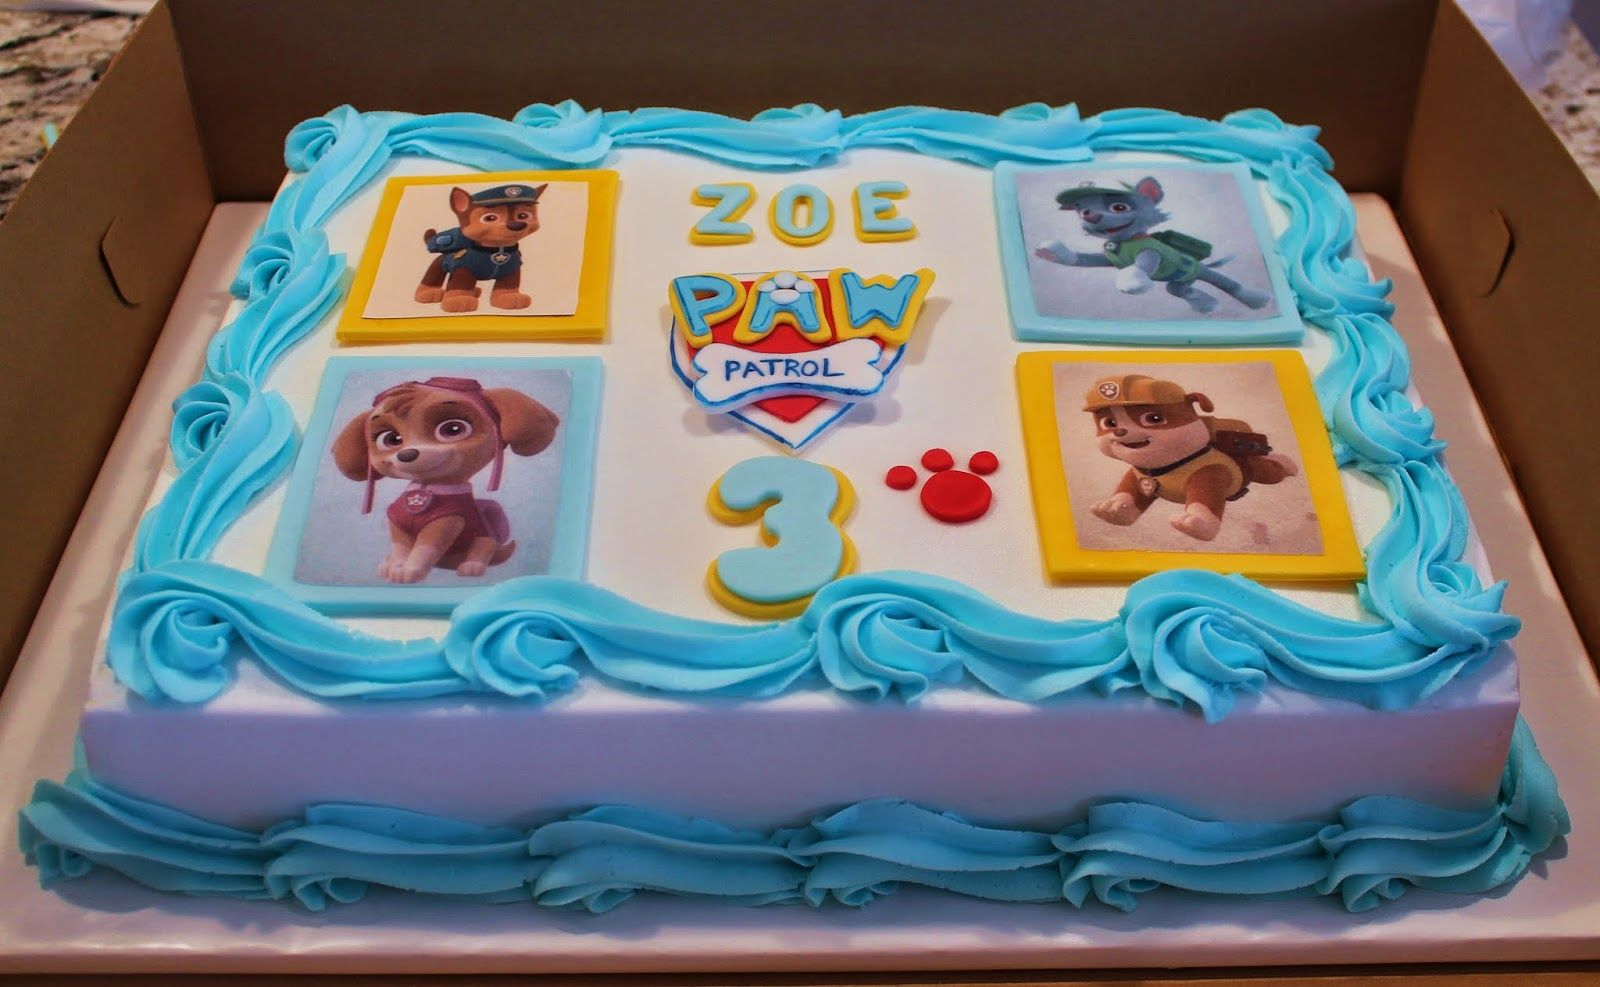 Creative Cakes By Lynn Paw Patrol Sheet Cake With Images Paw